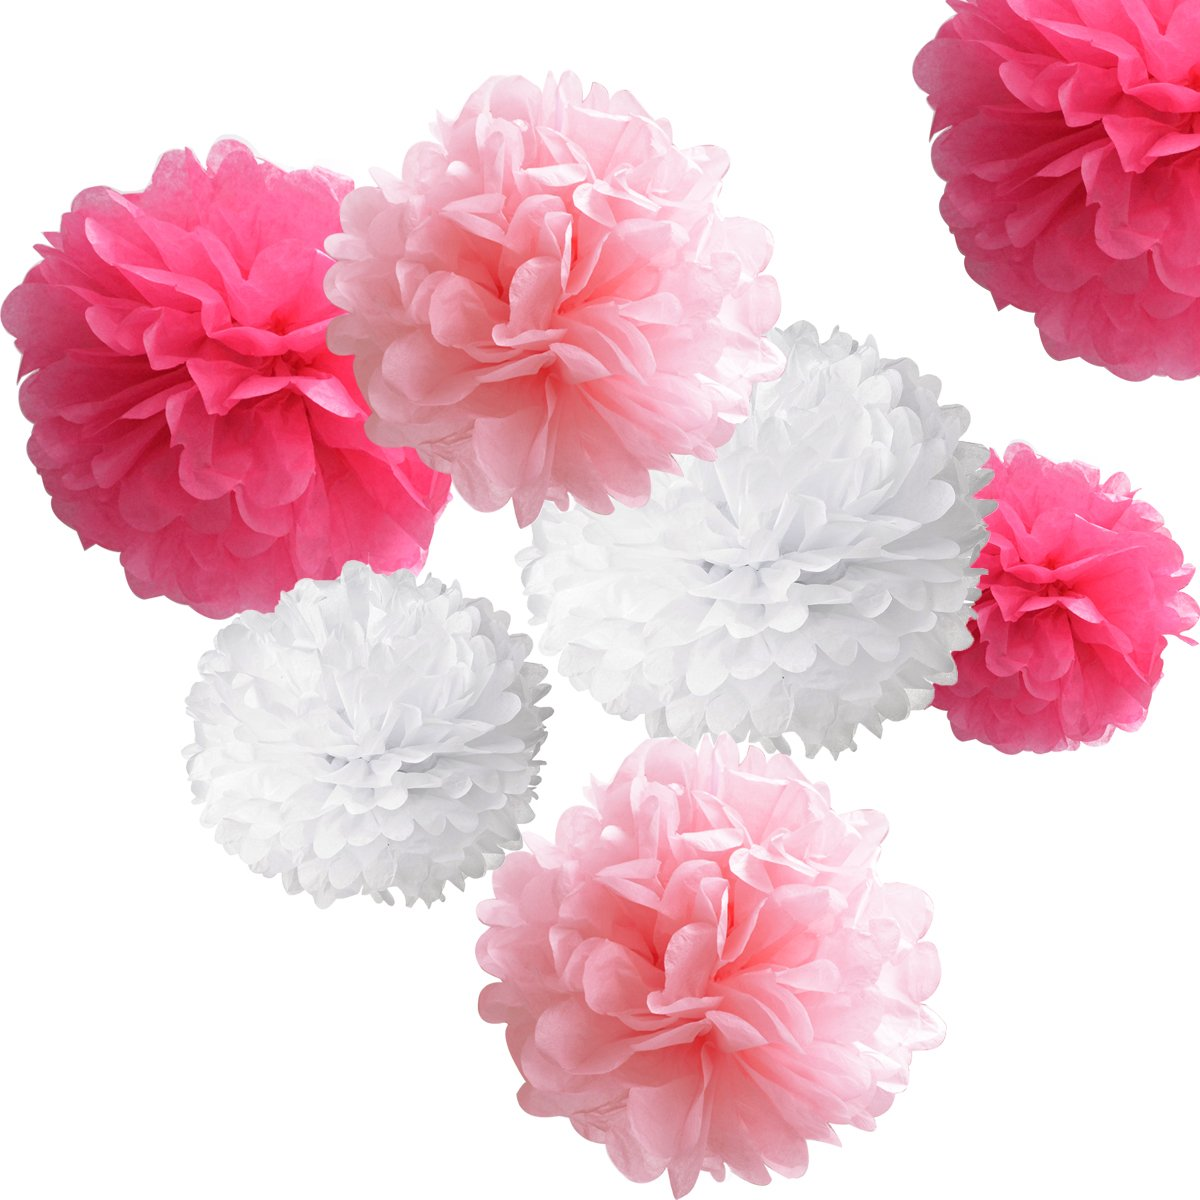 18pcs Tissue Hanging Paper Pom-poms Hmxpls Flower Ball Wedding Party Outdoor Decoration Premium Tissue Paper Pom Pom Flowers Craft Kit 8// 10// 12 Pink/& White